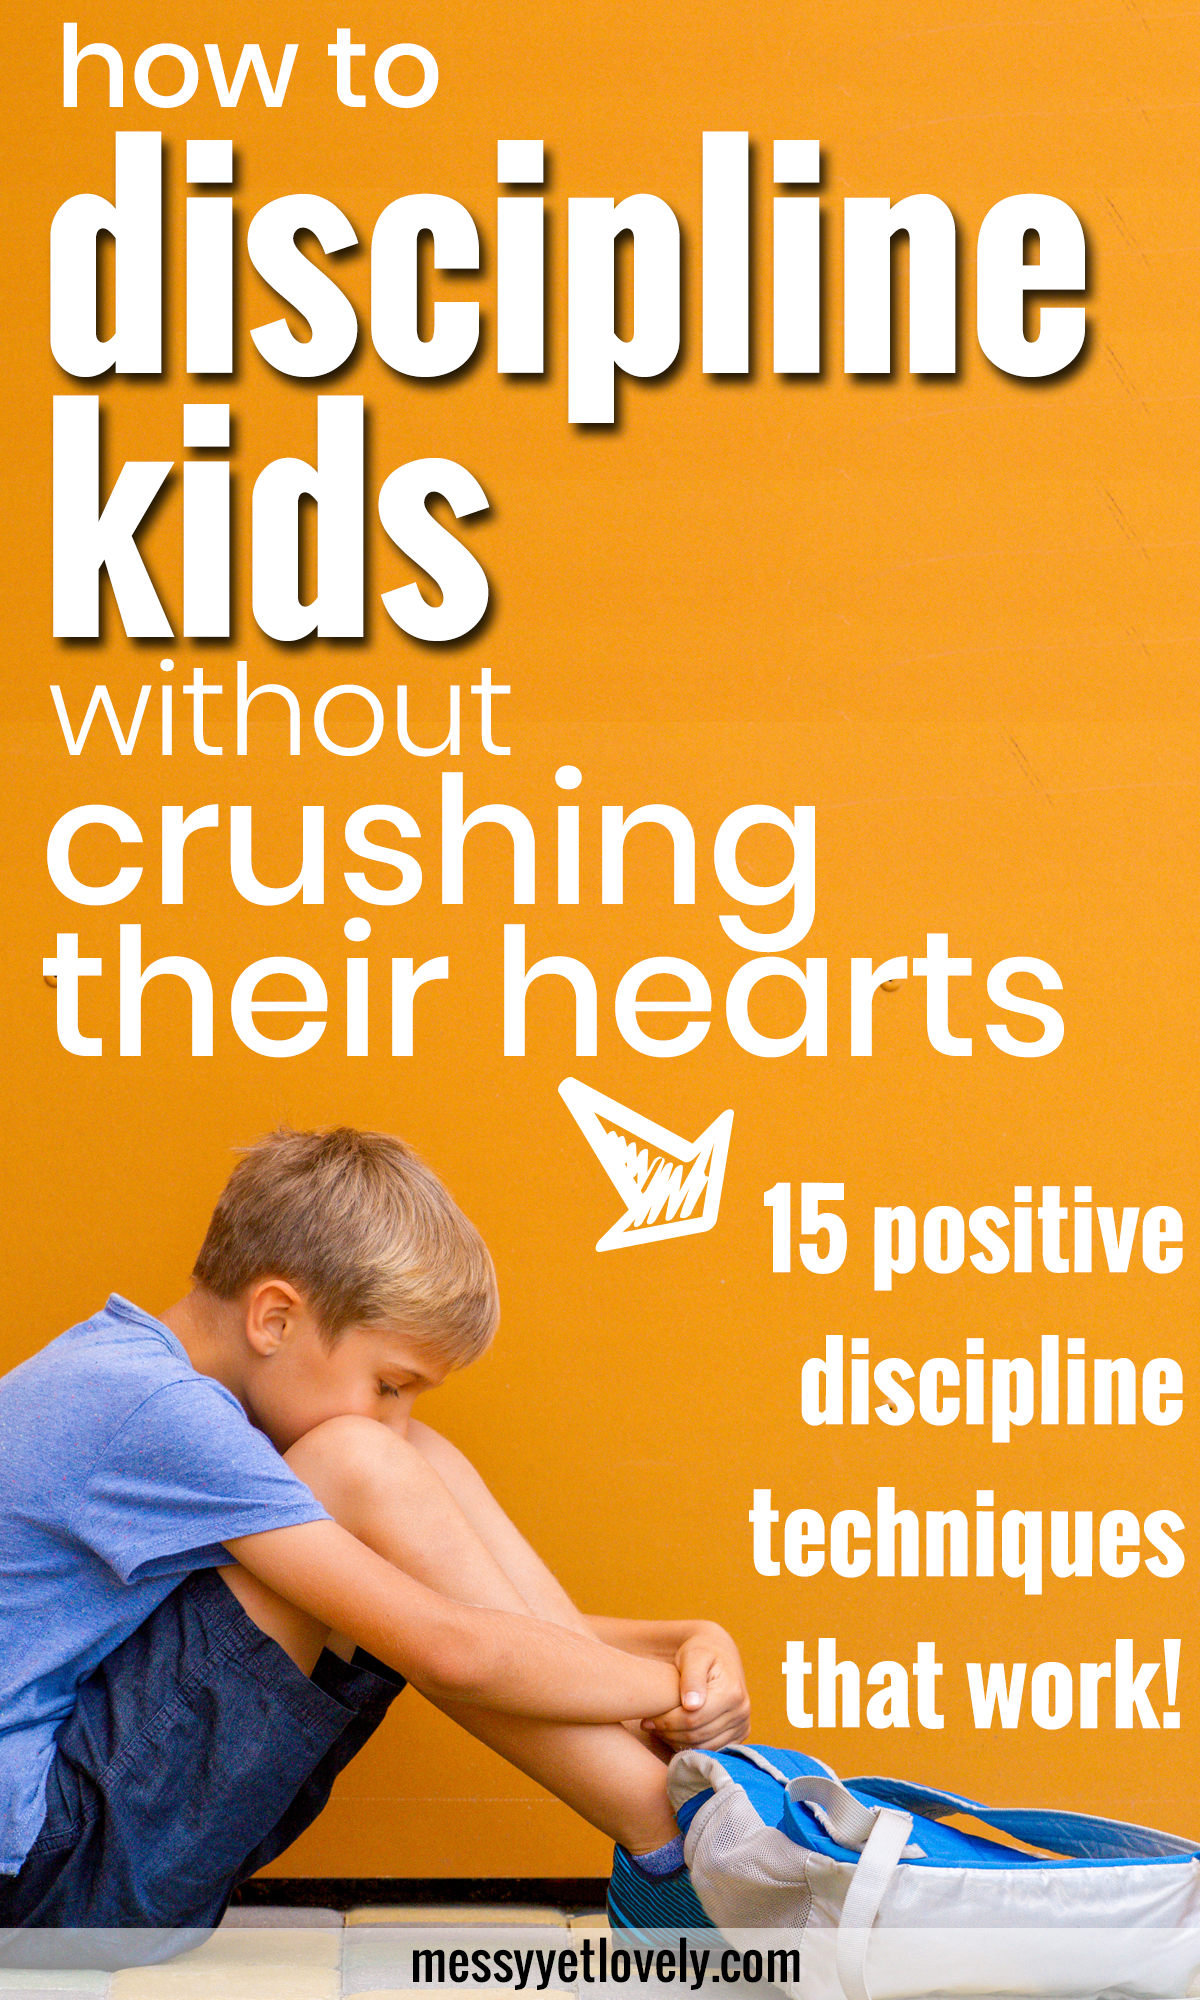 Photo of Disciplining children doesn't have to be hard. Behavior management can be simpli…